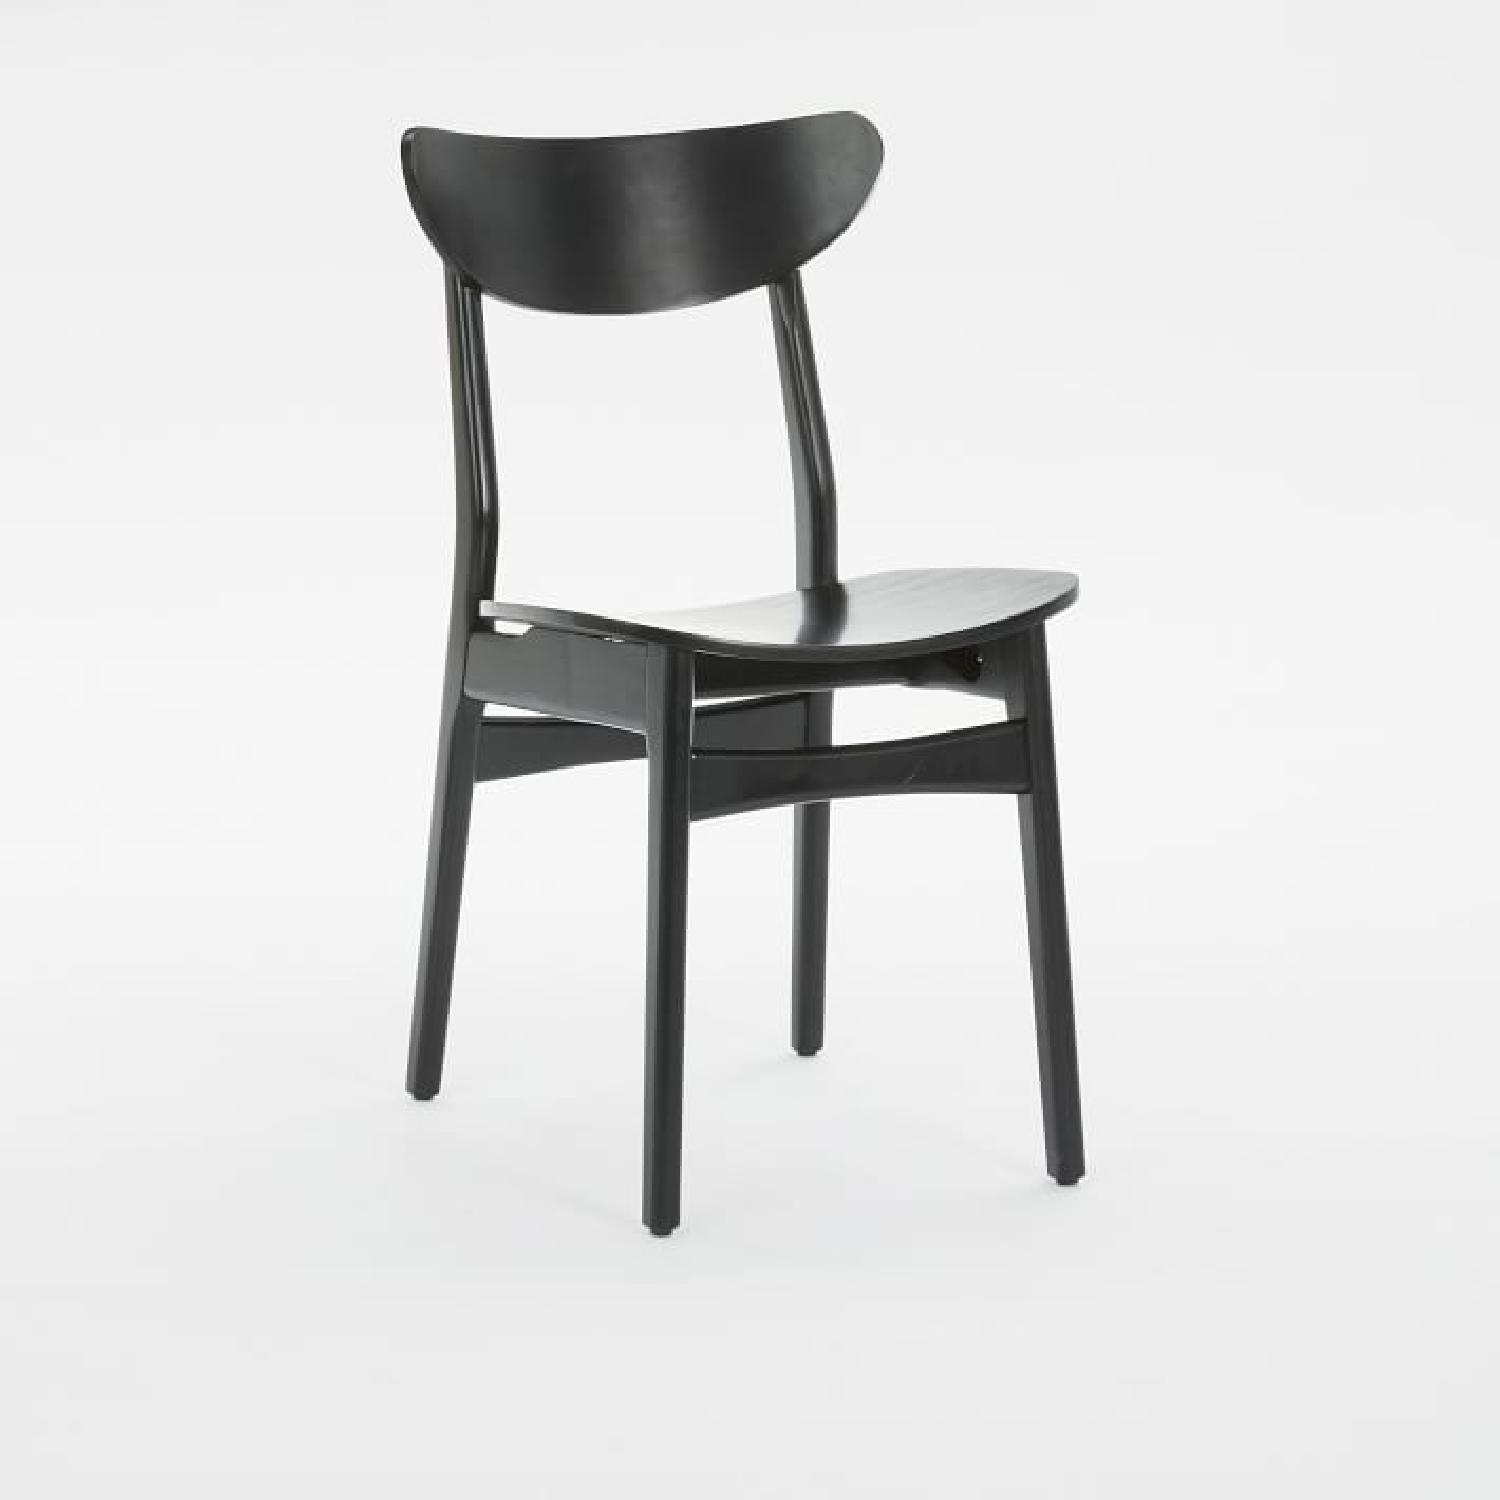 West Elm Classic Cafe Dining Chair in Black Lacquer - image-2